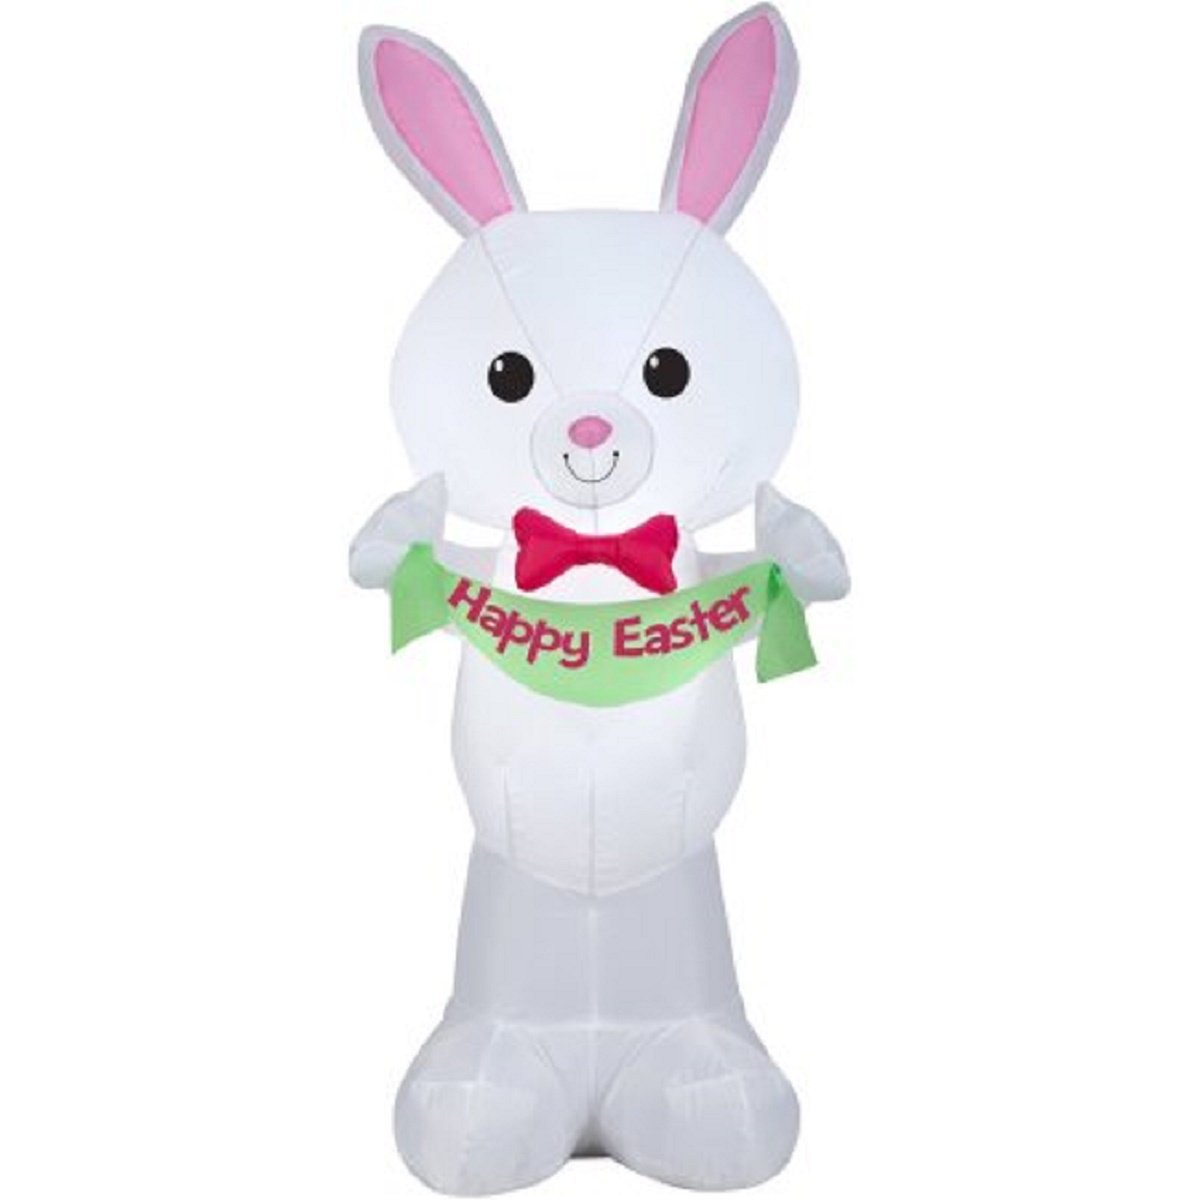 Easter Inflatable 4 LED Bunny Holding Happy Easter Banner By Gemmy - New for 2017